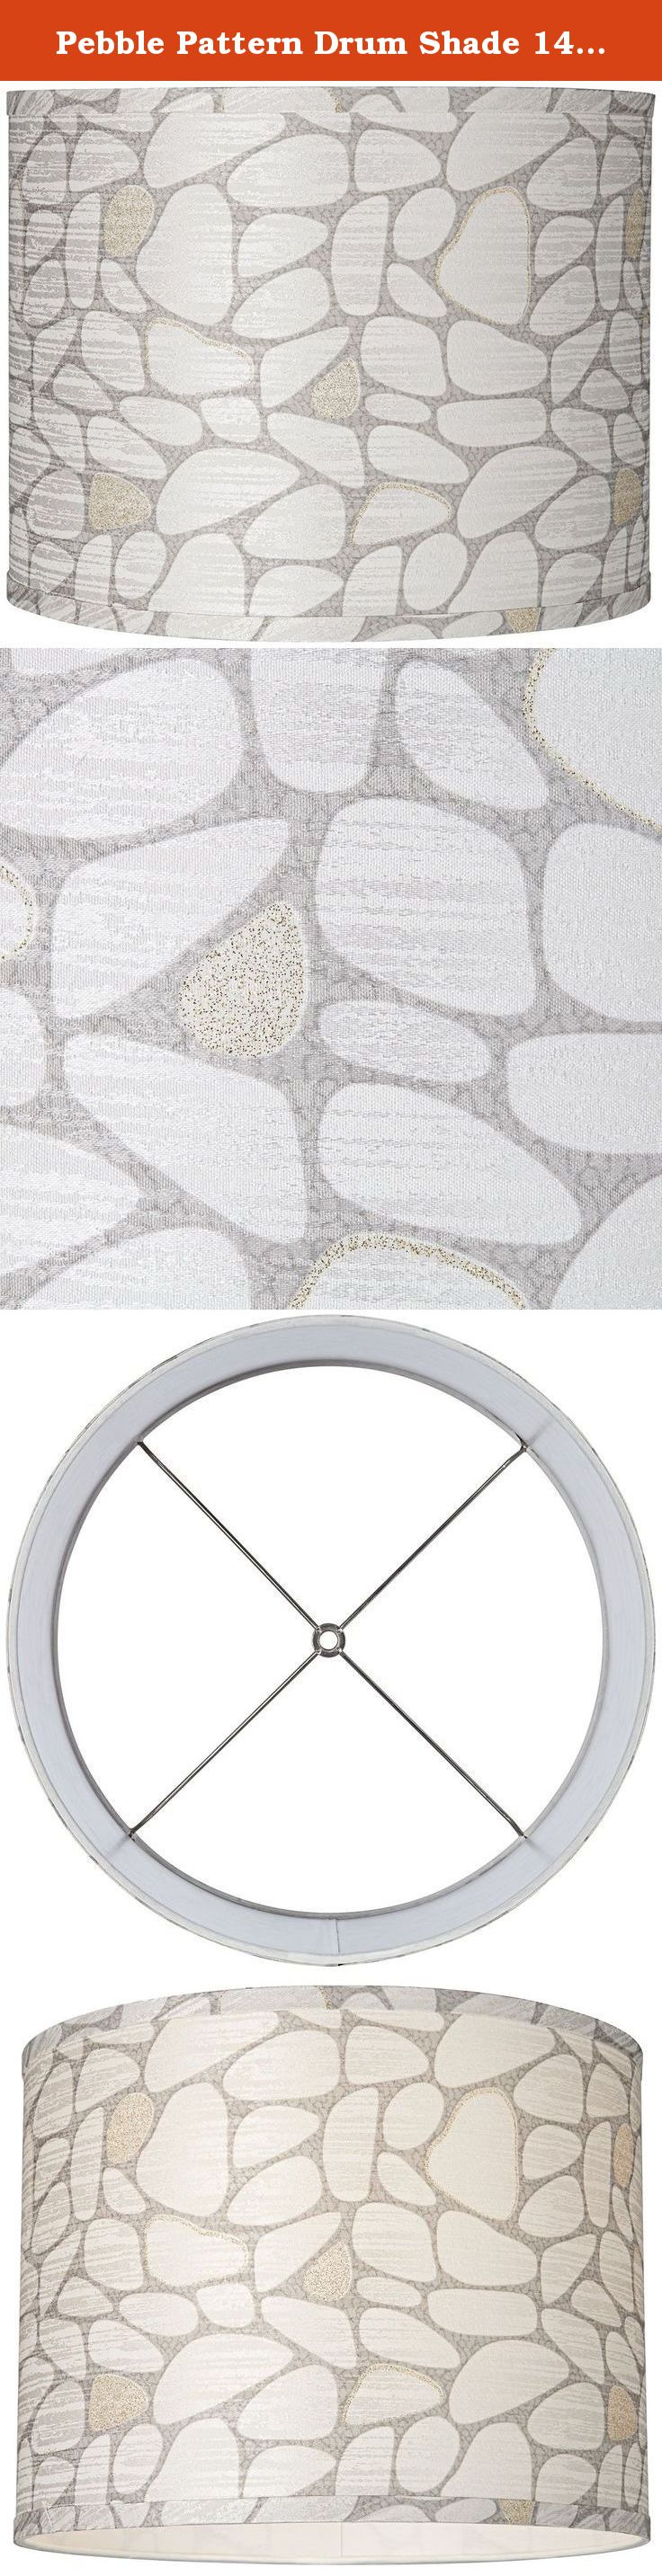 Table lamp harp sizes - Pebble Pattern Drum Shade 14x14x11 Spider Update The Look Of Any Table Lamp